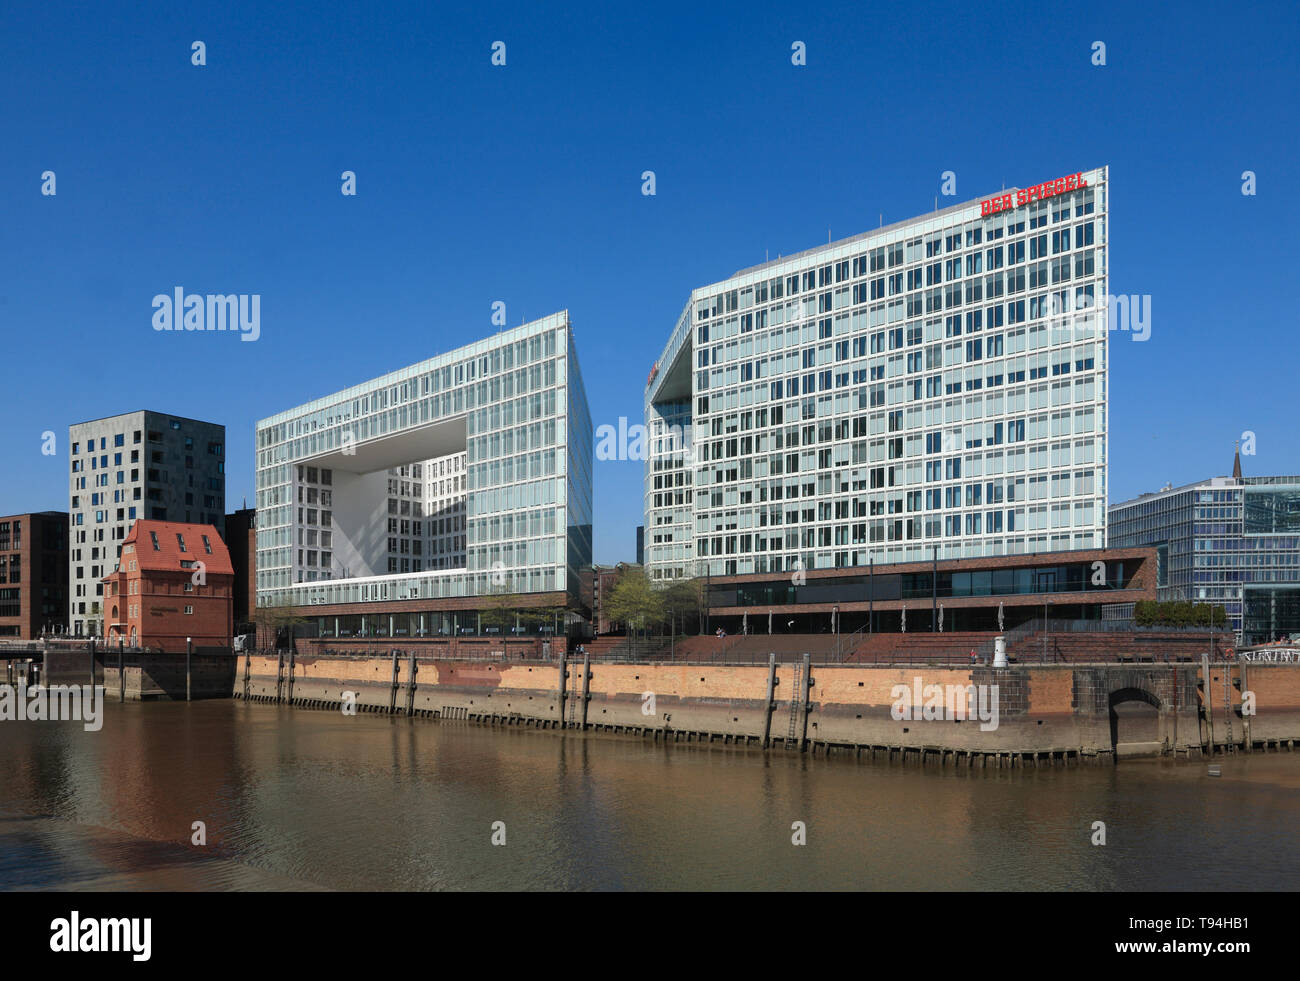 Spiegel-publishing house, Ericusspitze, Hafencity, Hamburg, Germany, Europe - Stock Image